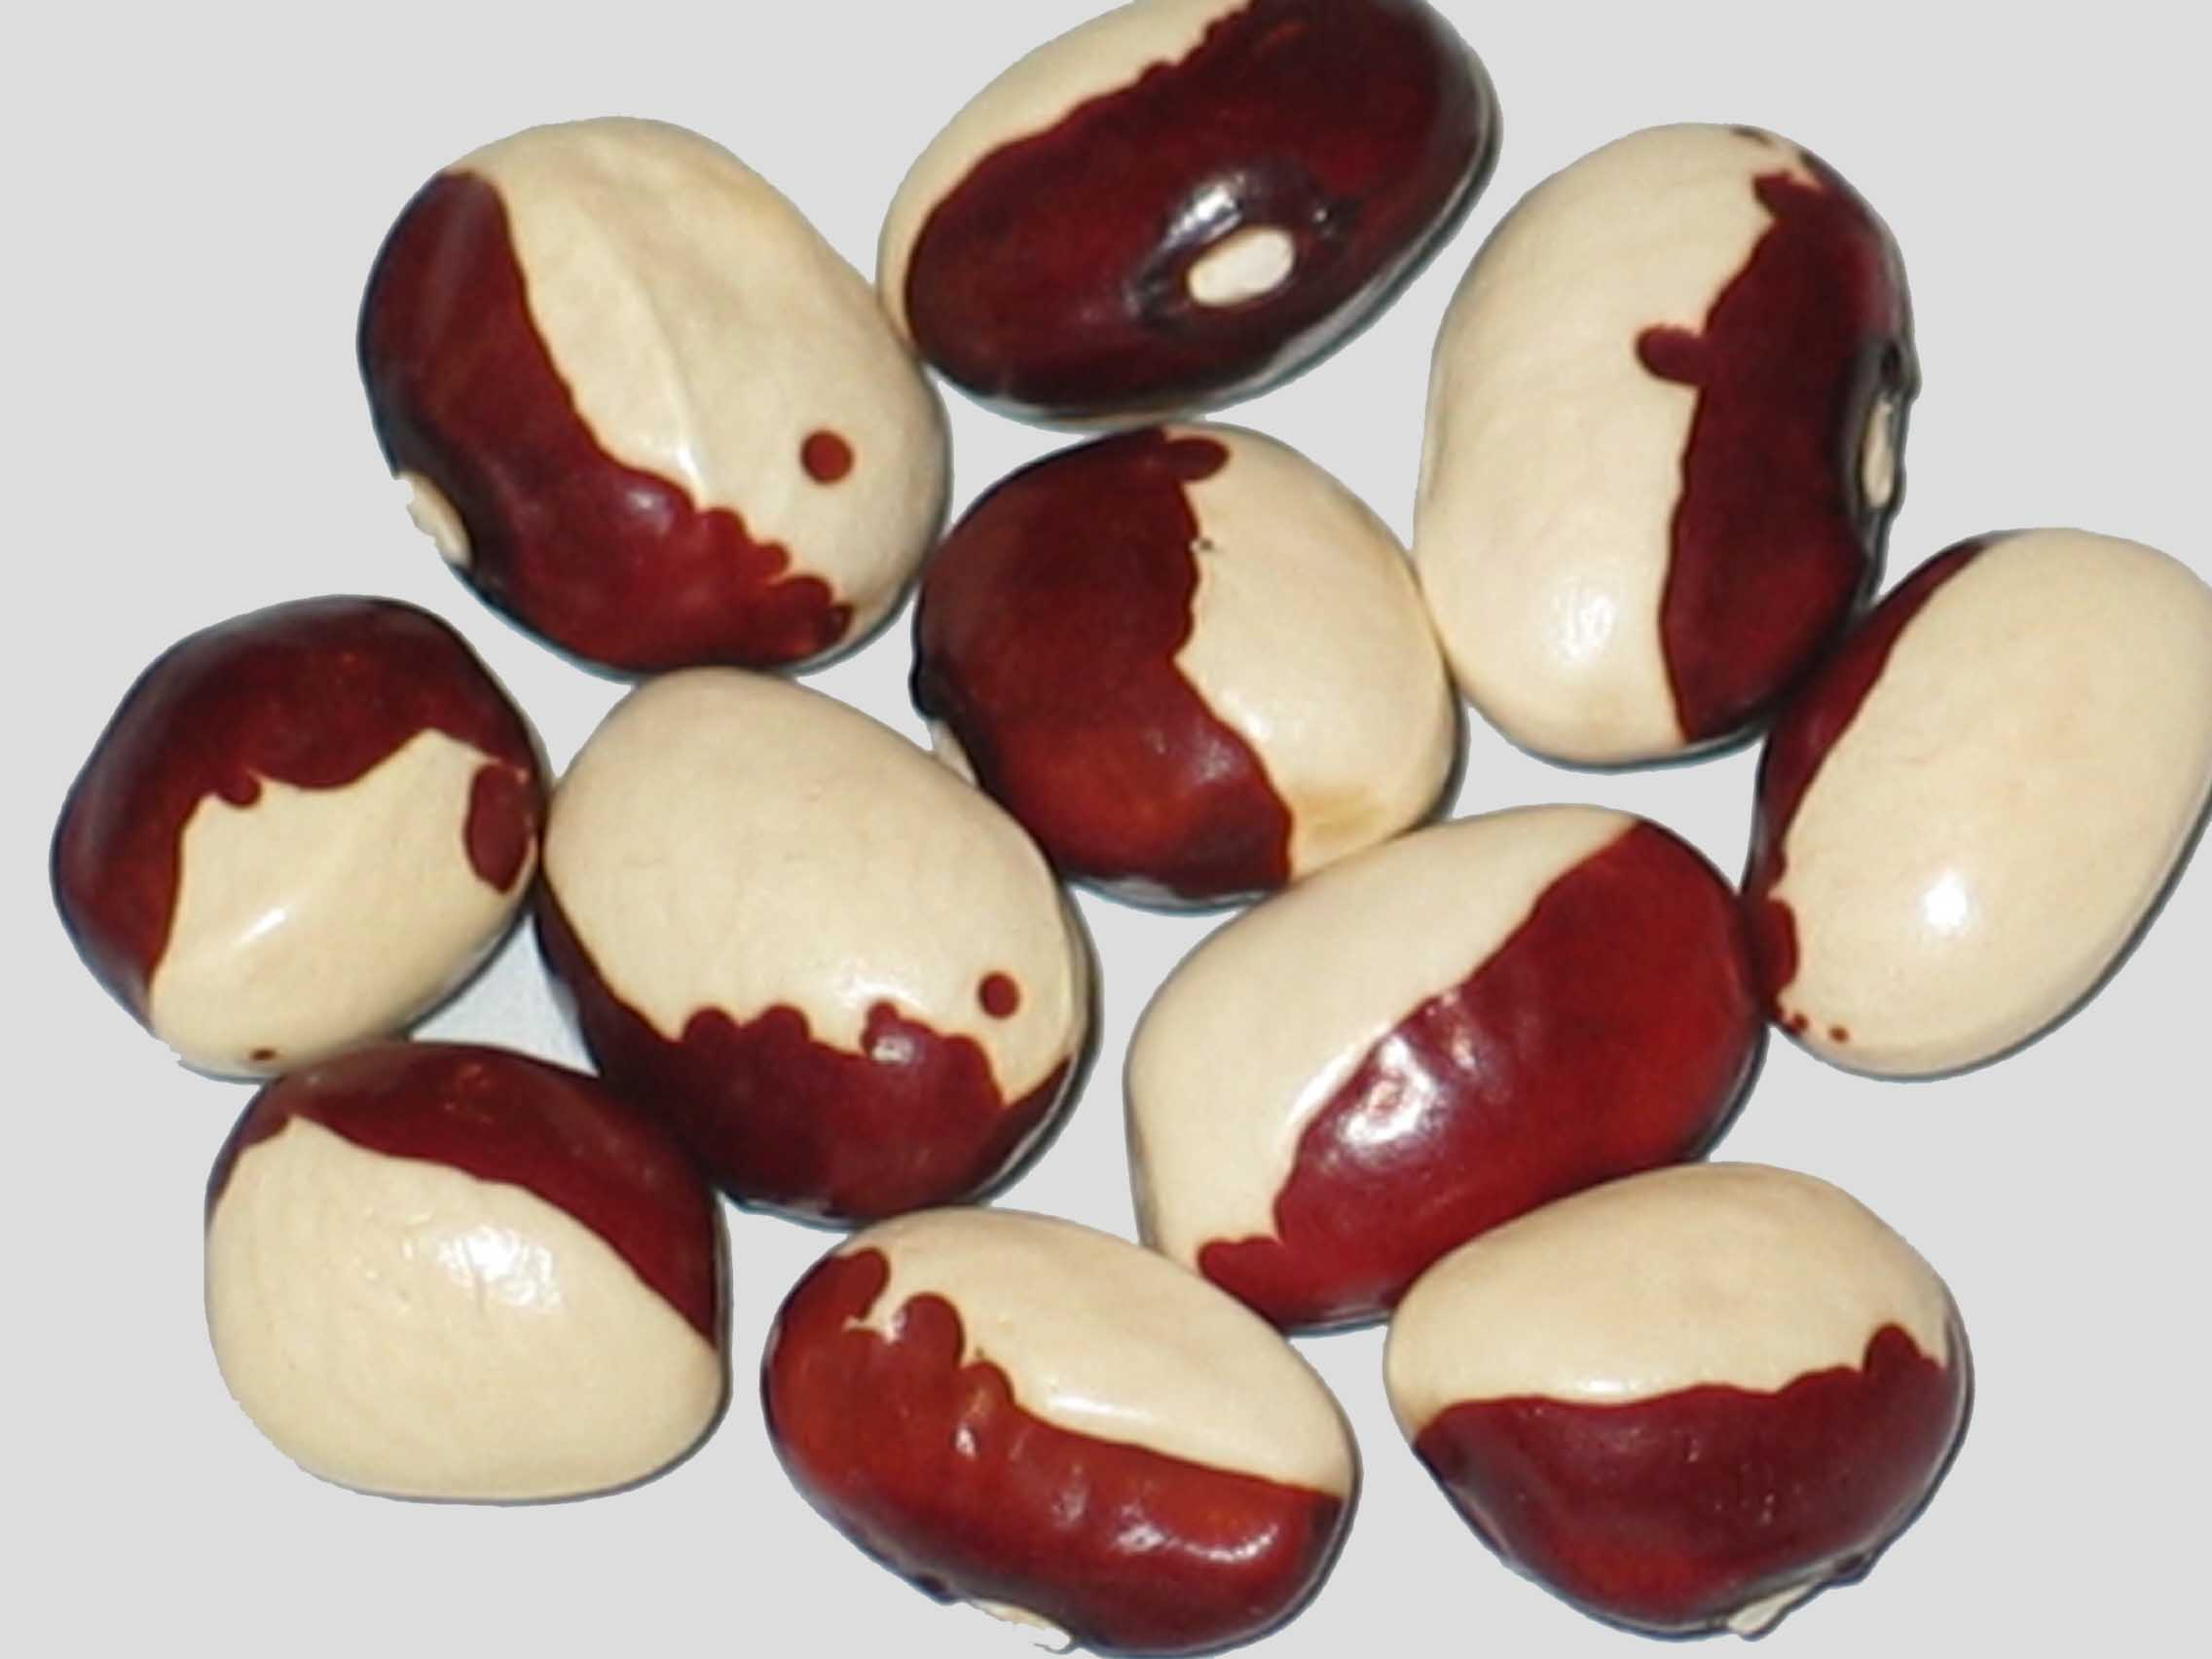 image of Joyce Fetterley's Red & White beans